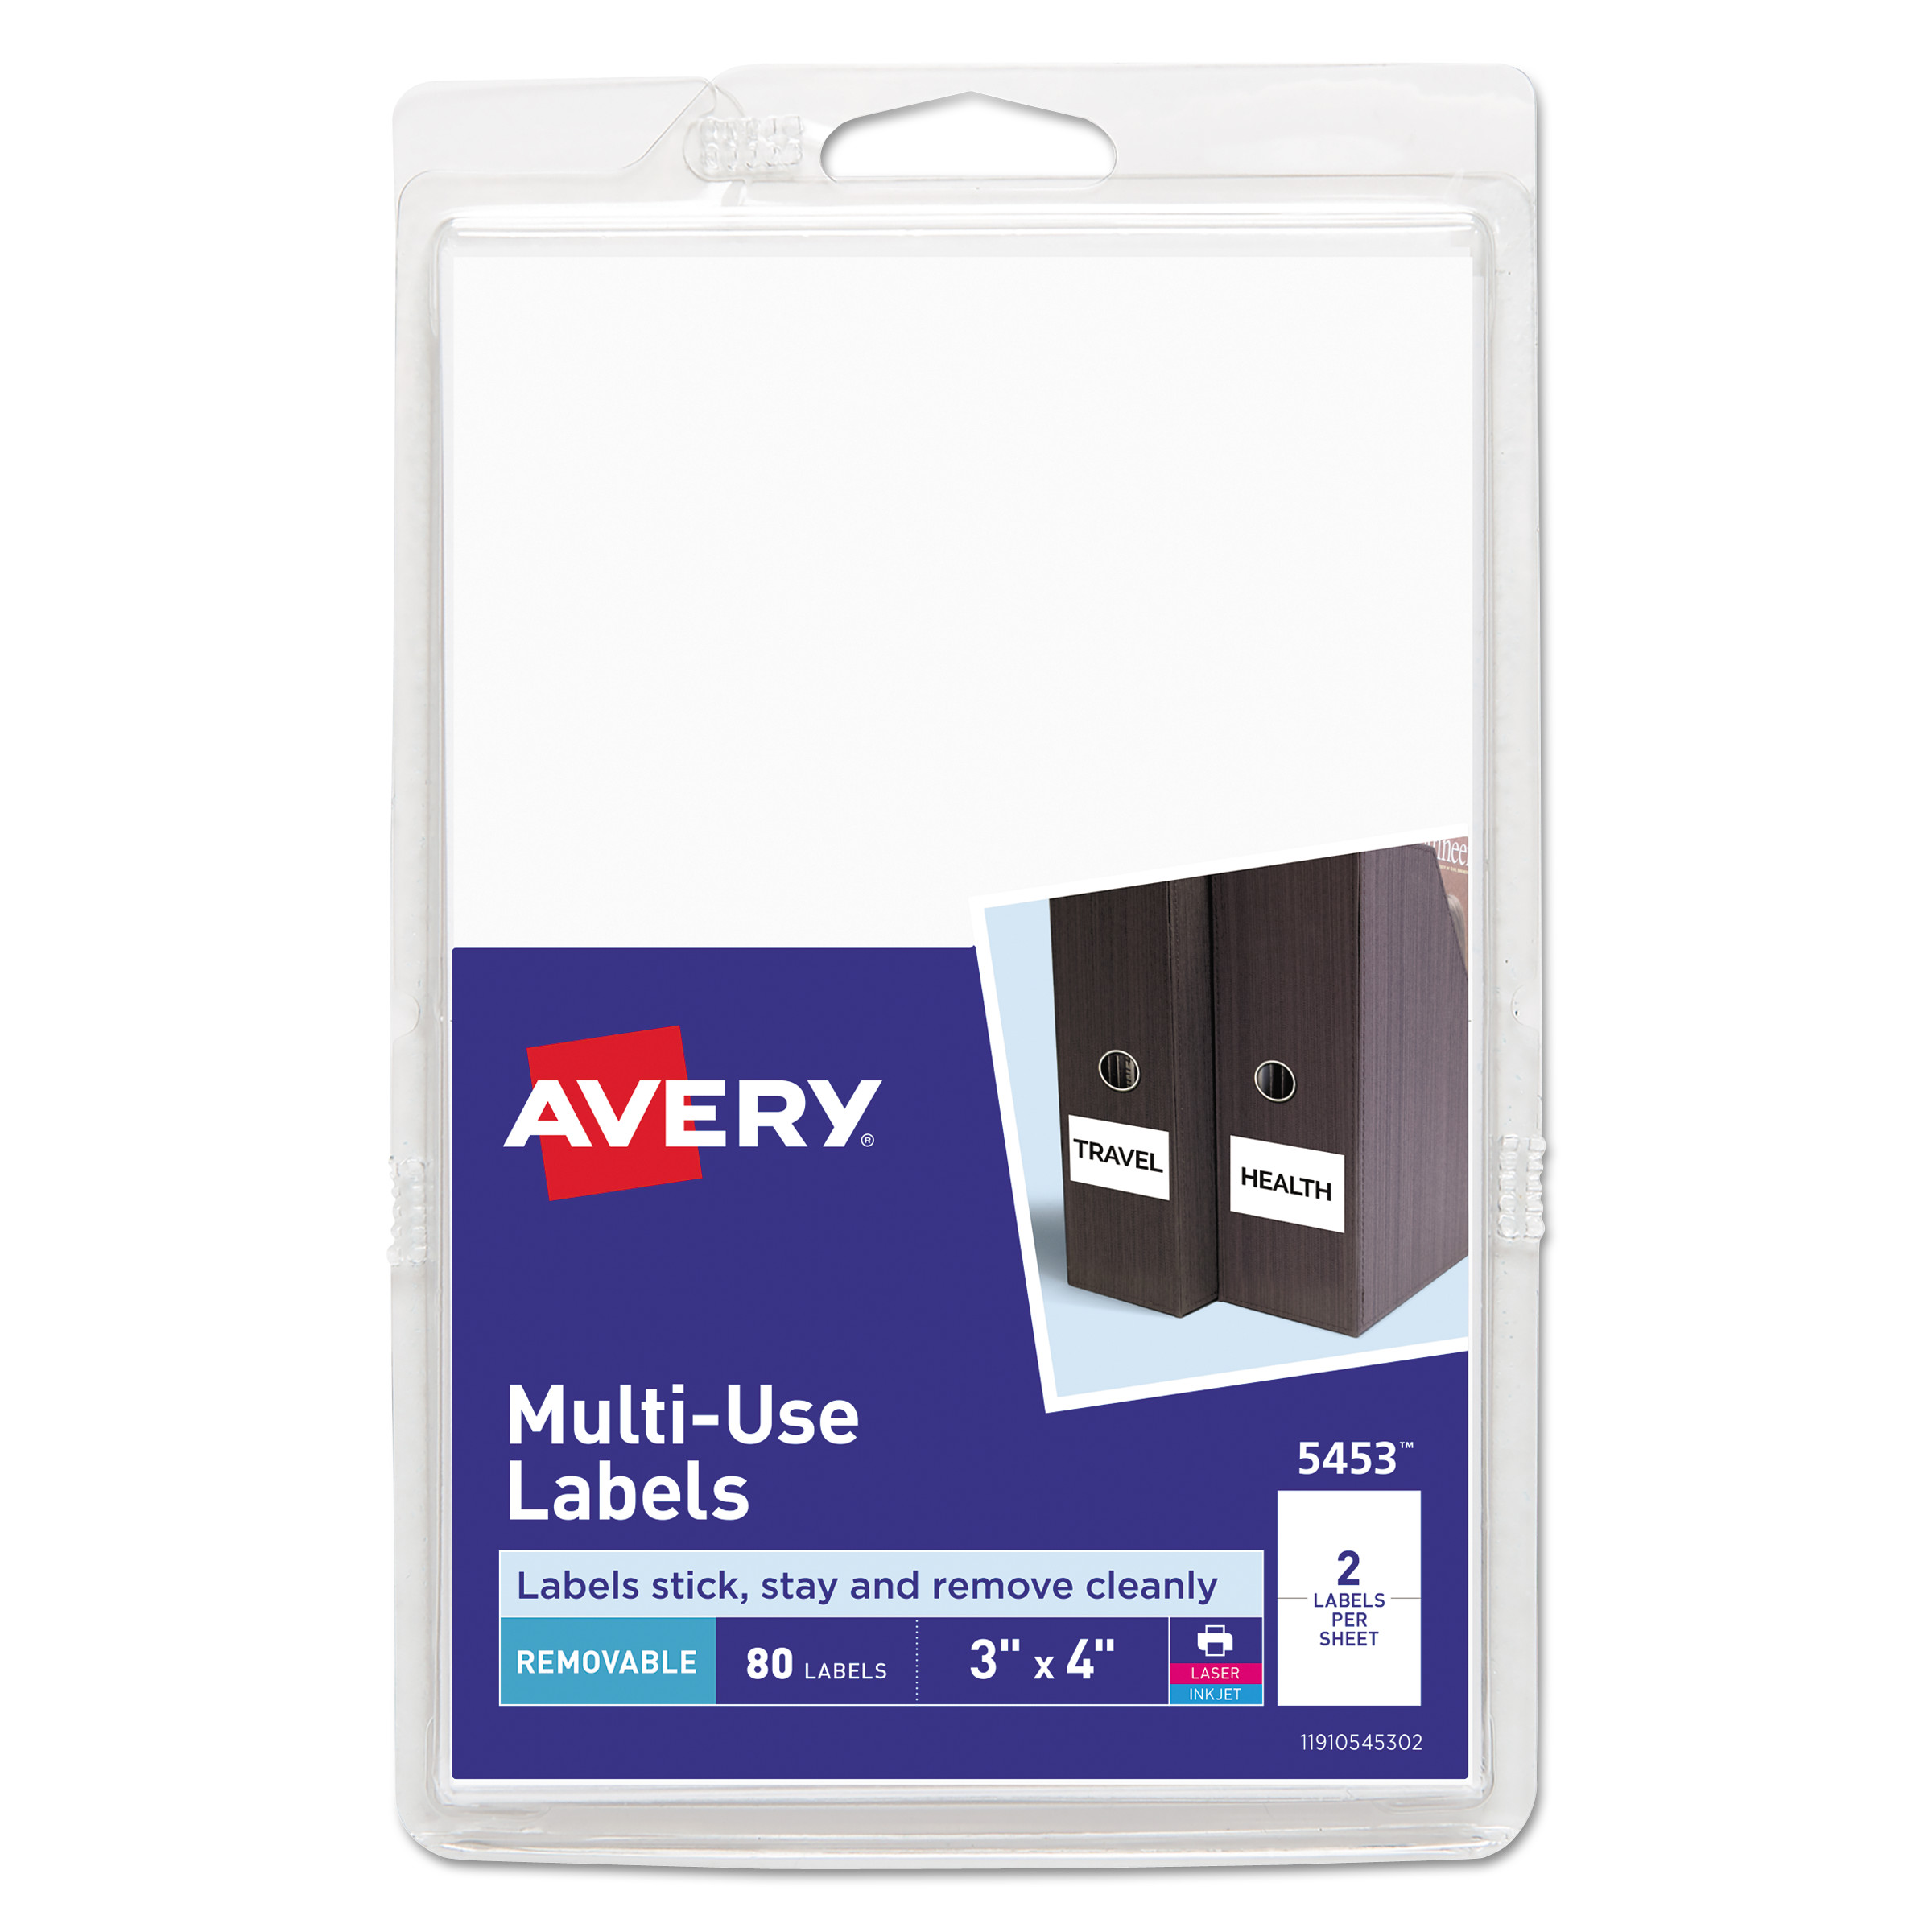 Removable Multi-Use Labels, Inkjet/Laser Printers, 3 x 4, White, 2/Sheet, 40 Sheets/Pack, (5453) AVE05453